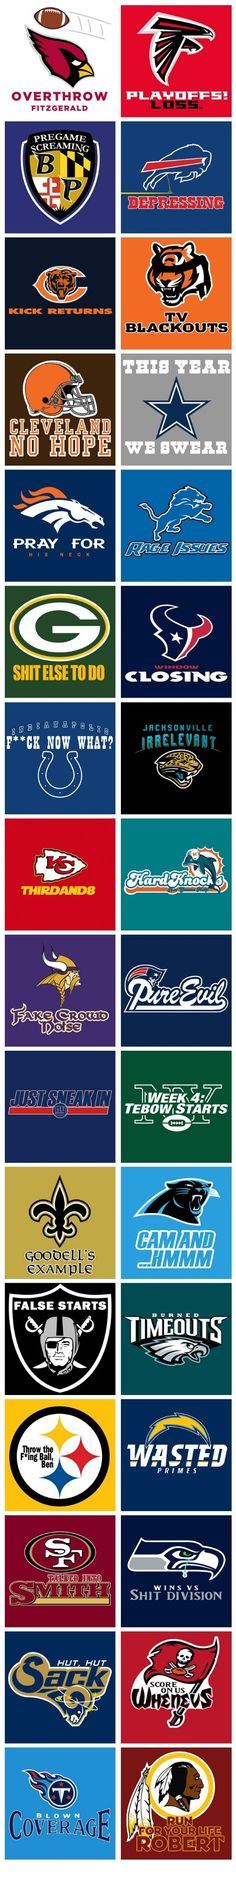 Honest logos for the Patriots, Cowboys, Giants, and rest of the NFL - Grantland Funny cause it's True! Nfl Memes, Football Memes, Sports Memes, Football Season, Nfl Football, American Football, Funny Sports, Funny Nfl, Hilarious